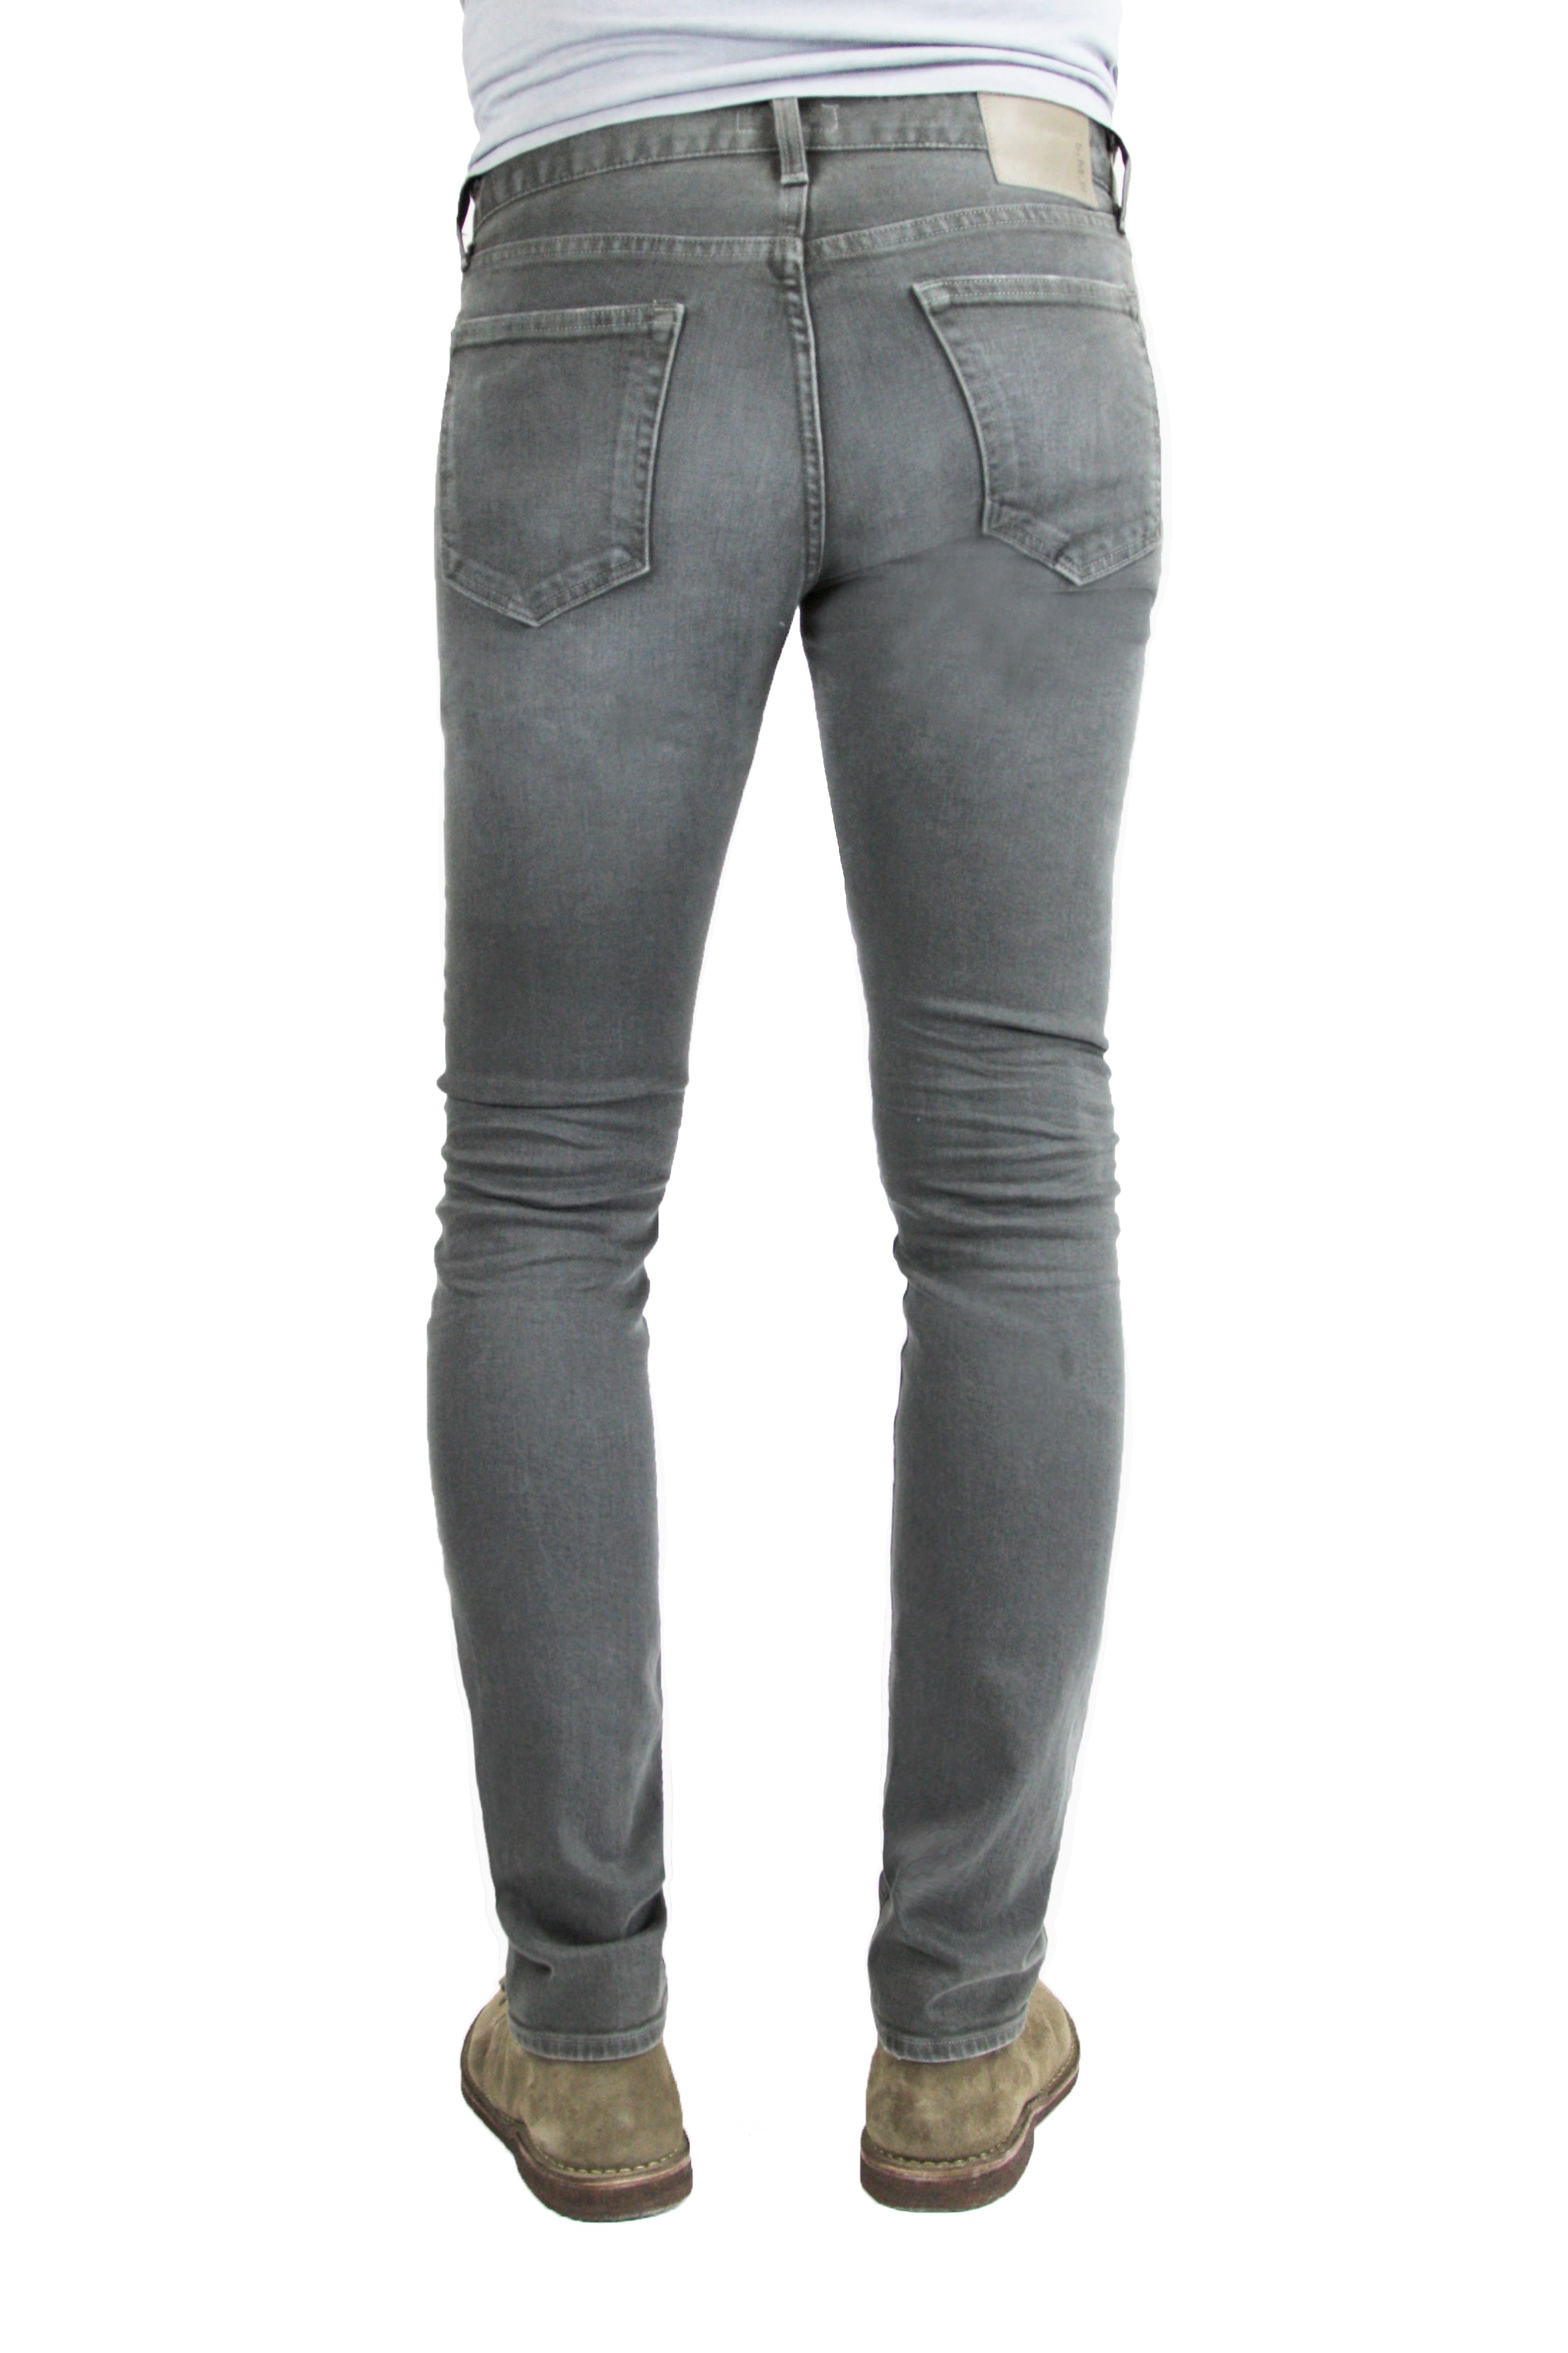 Back of S.M.N Studio's Finn in Ashton Men's Jeans - Tapered slim Comfort Stretch Denim in grey